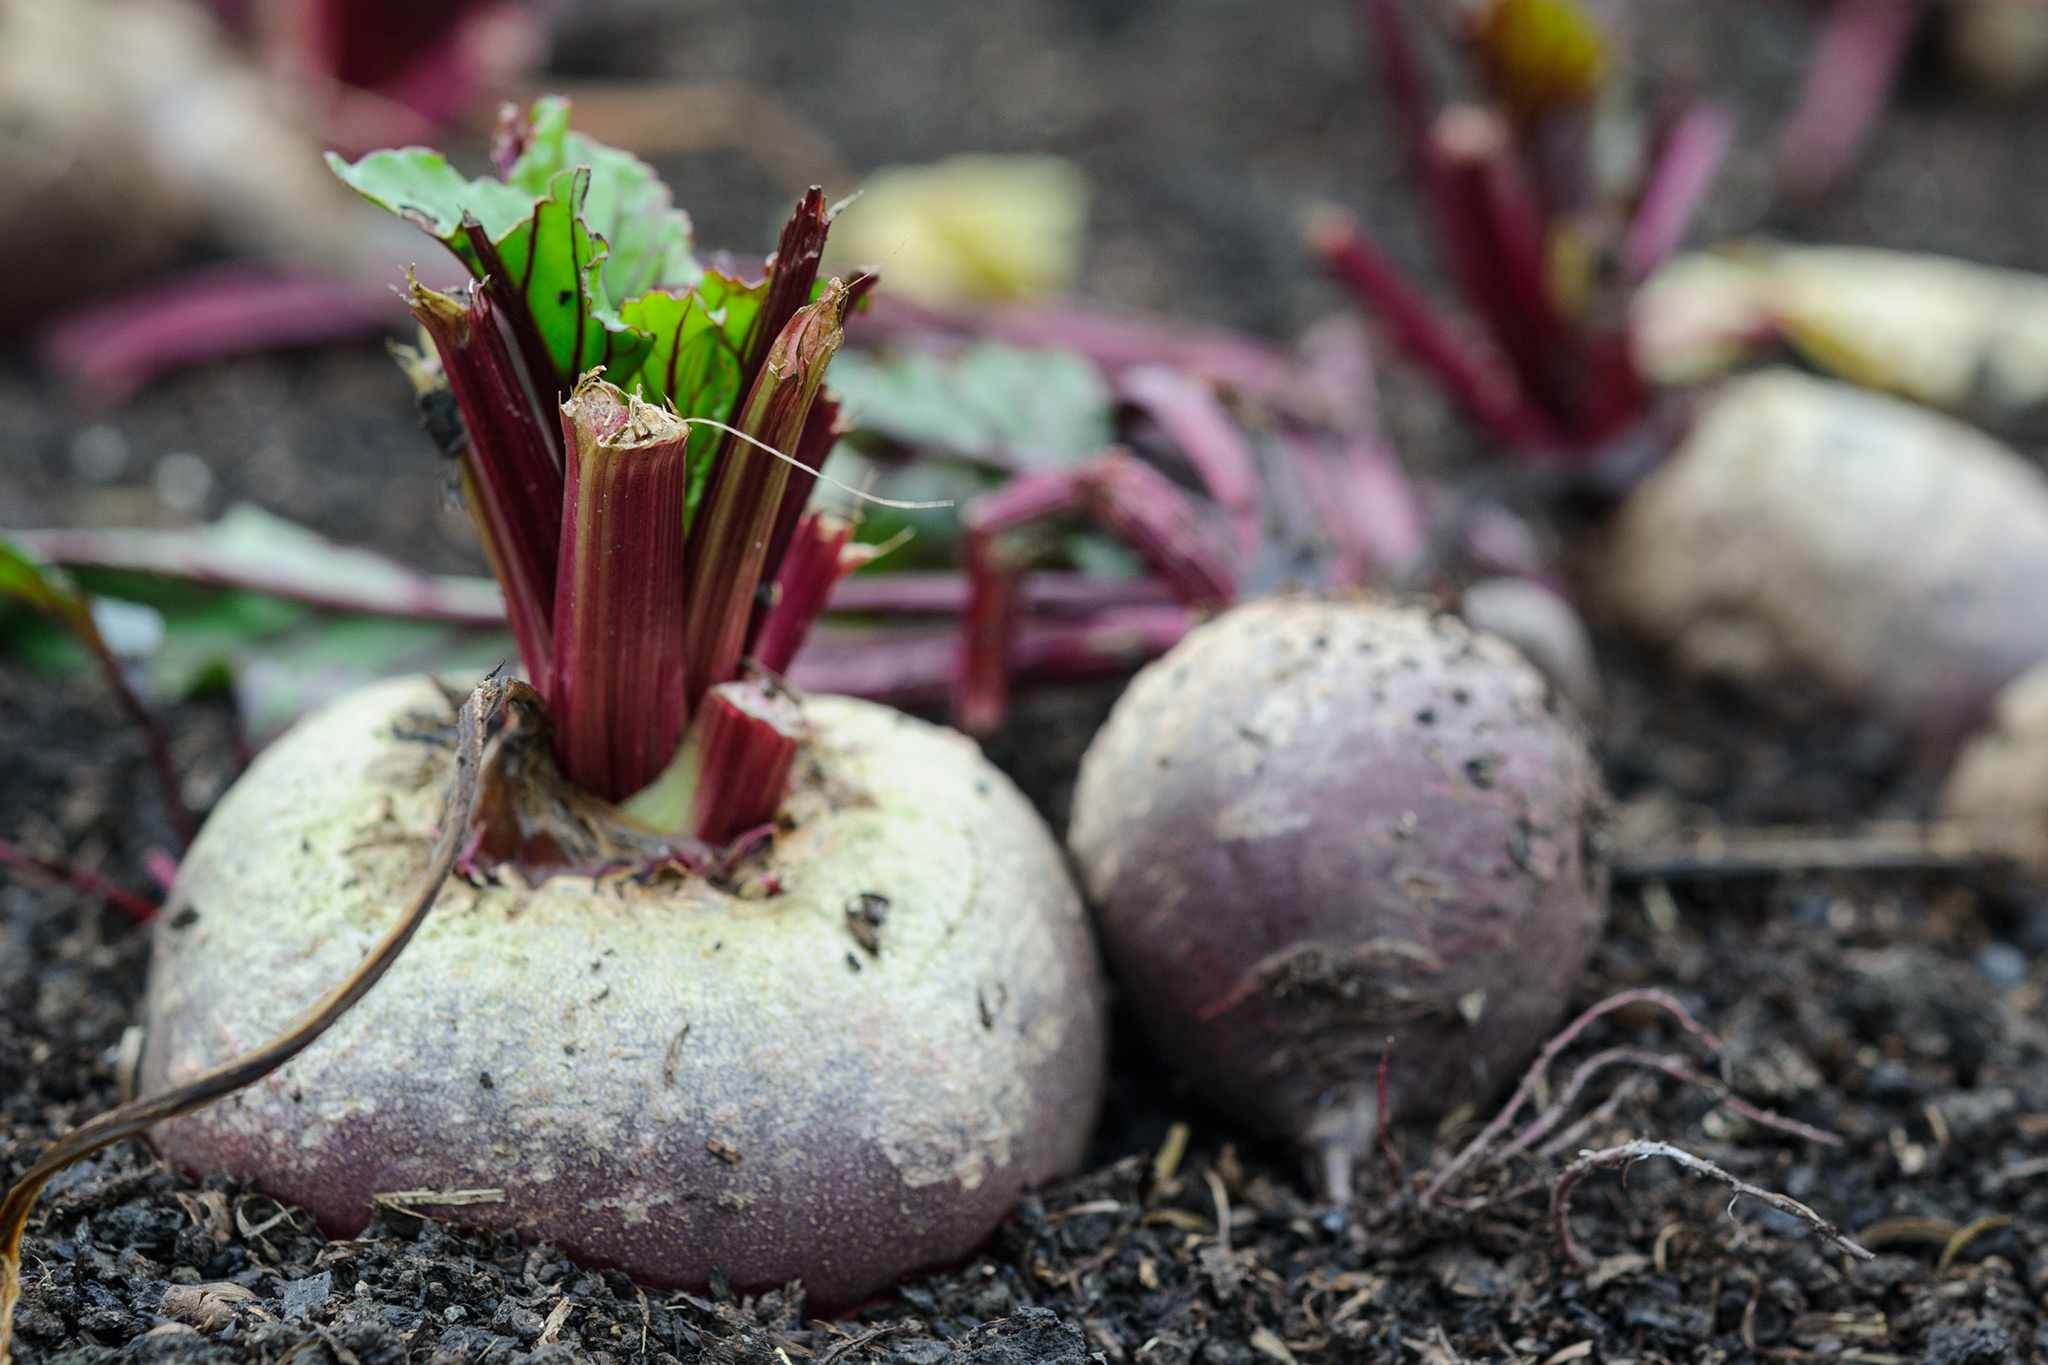 Beetroot growing